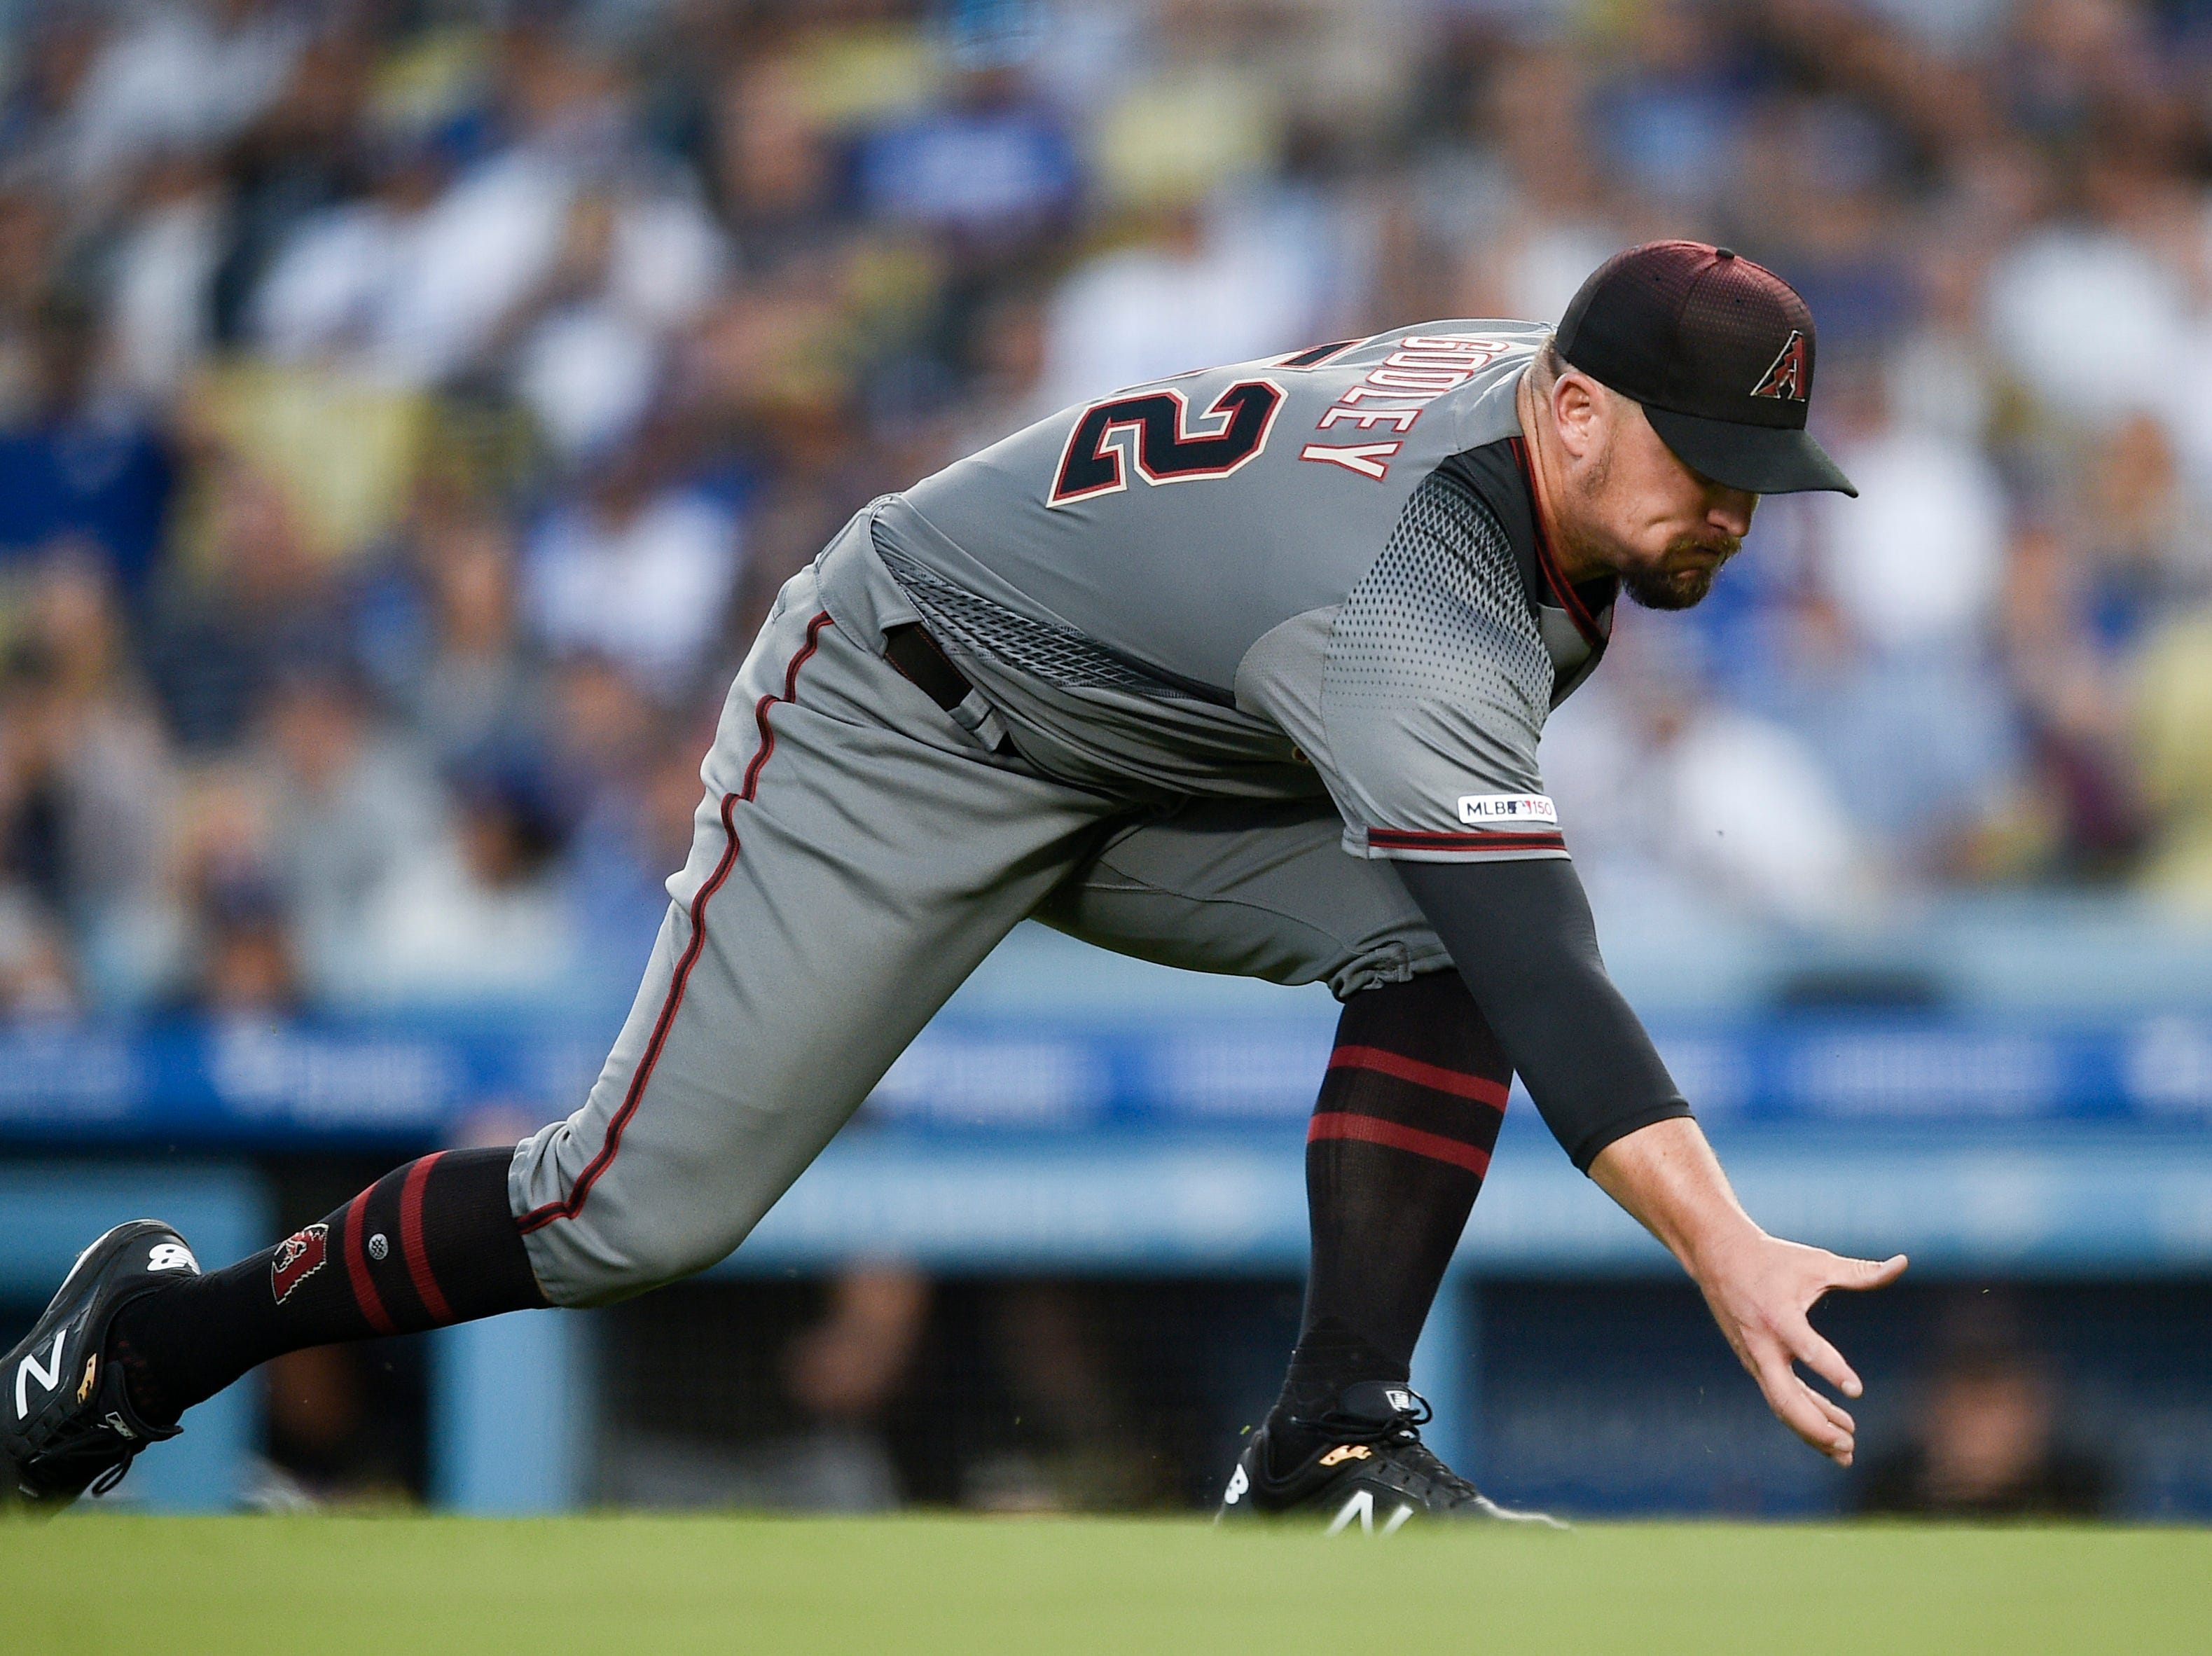 Mar 30, 2019; Los Angeles, CA, USA; Arizona Diamondbacks starting pitcher Zack Godley (52) fields a ball hit by Los Angeles Dodgers shortstop Corey Seager (not pictured) during the third inning at Dodger Stadium. Mandatory Credit: Kelvin Kuo-USA TODAY Sports